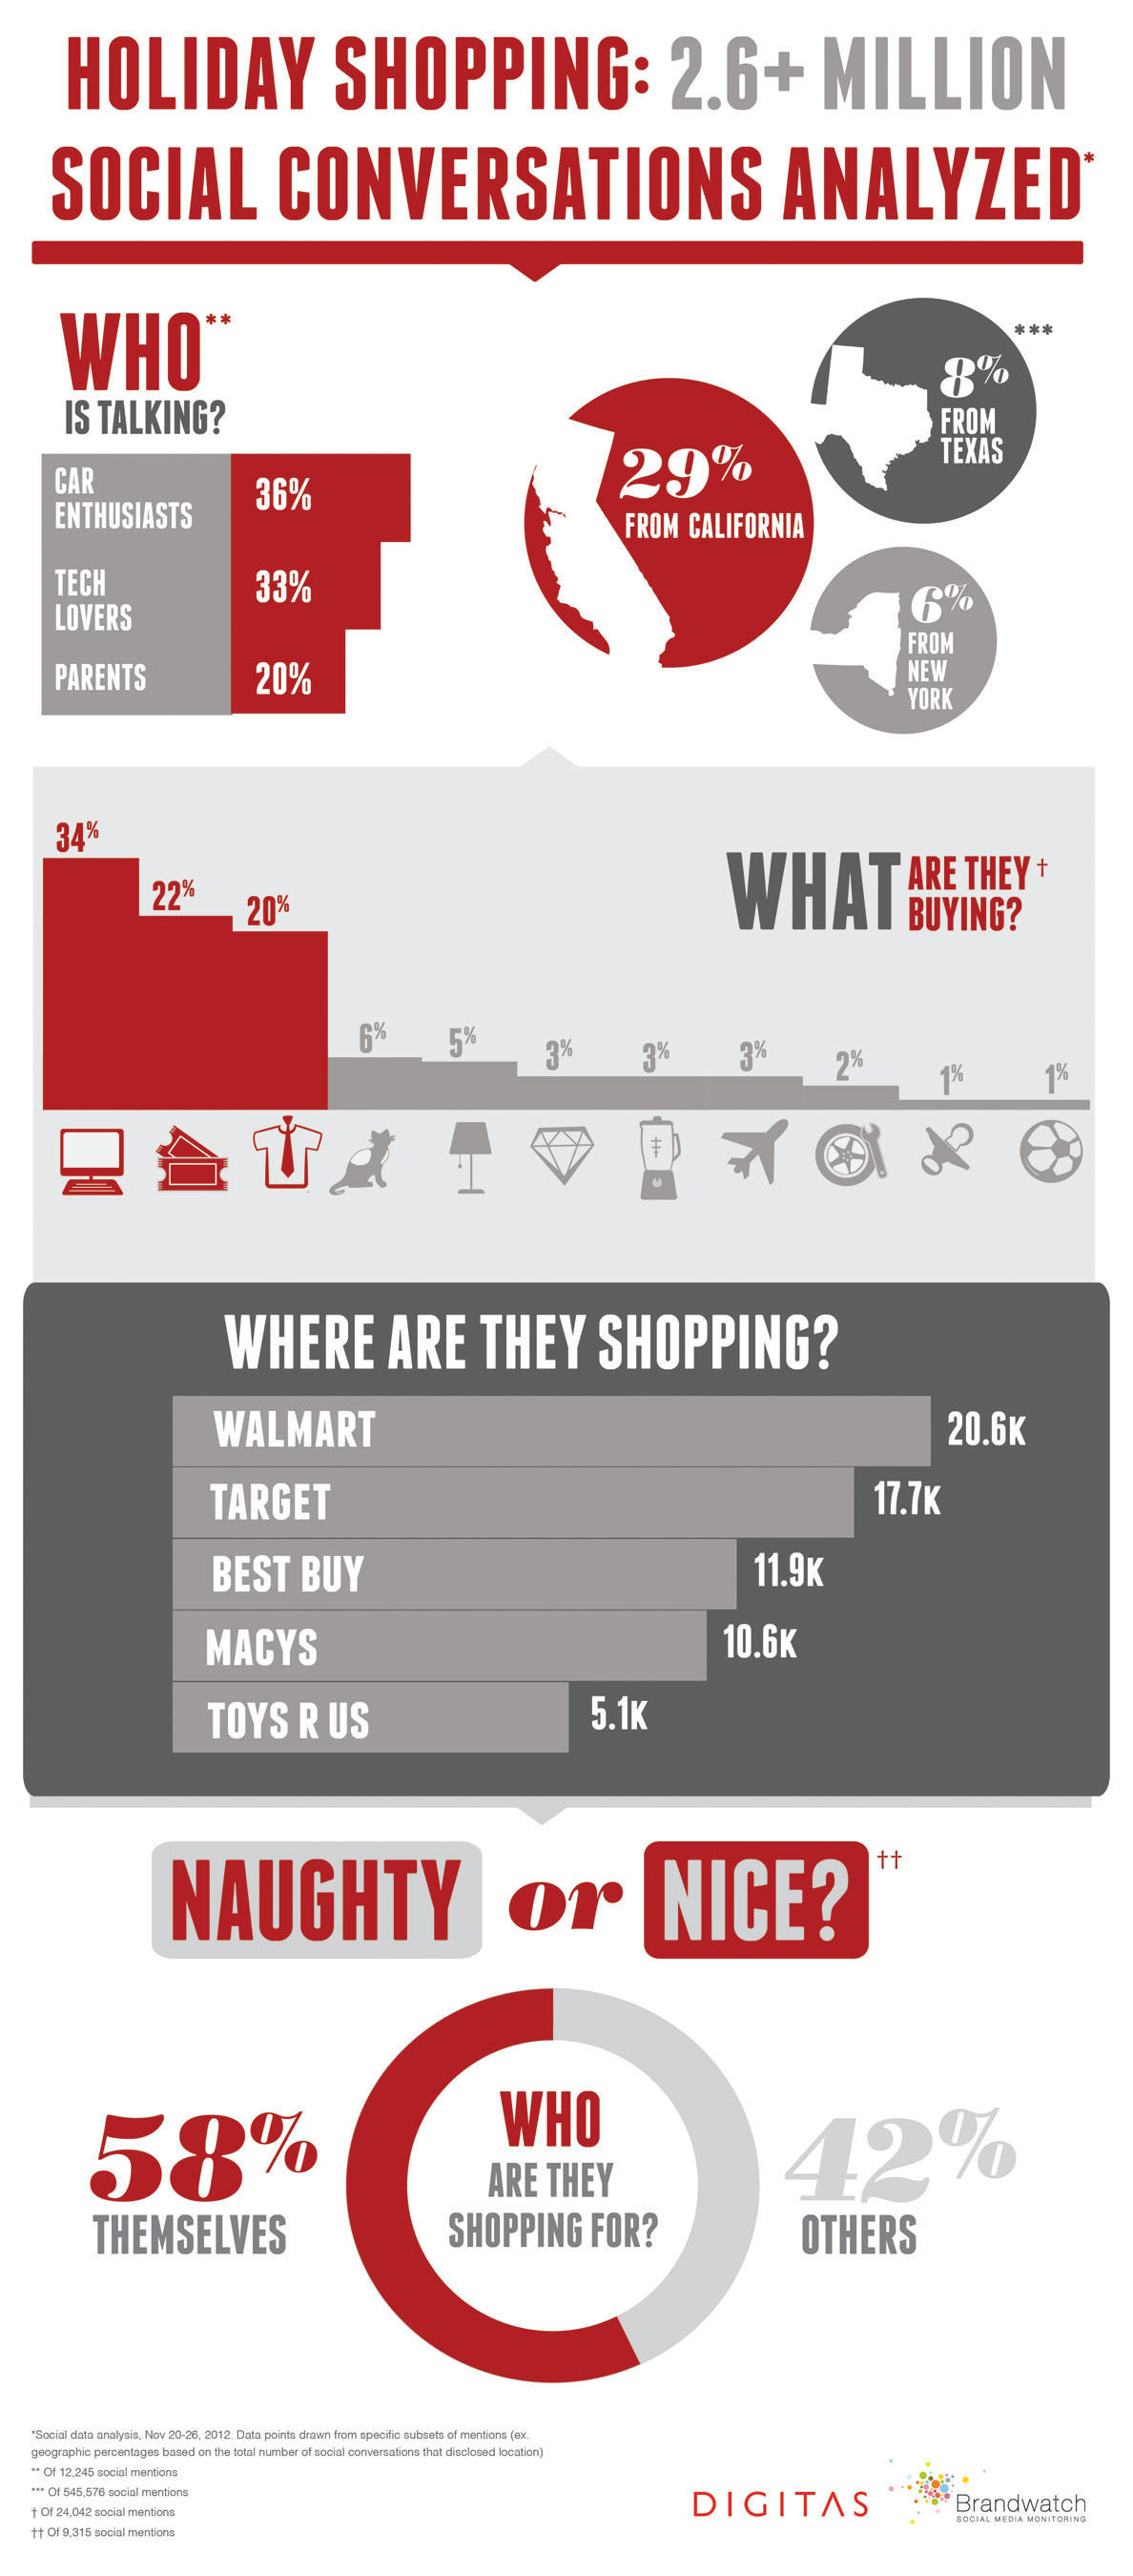 Naughty Or Nice? Consumer Holiday Shopping Trends Revealed In 2.6+ Million Social Conversations